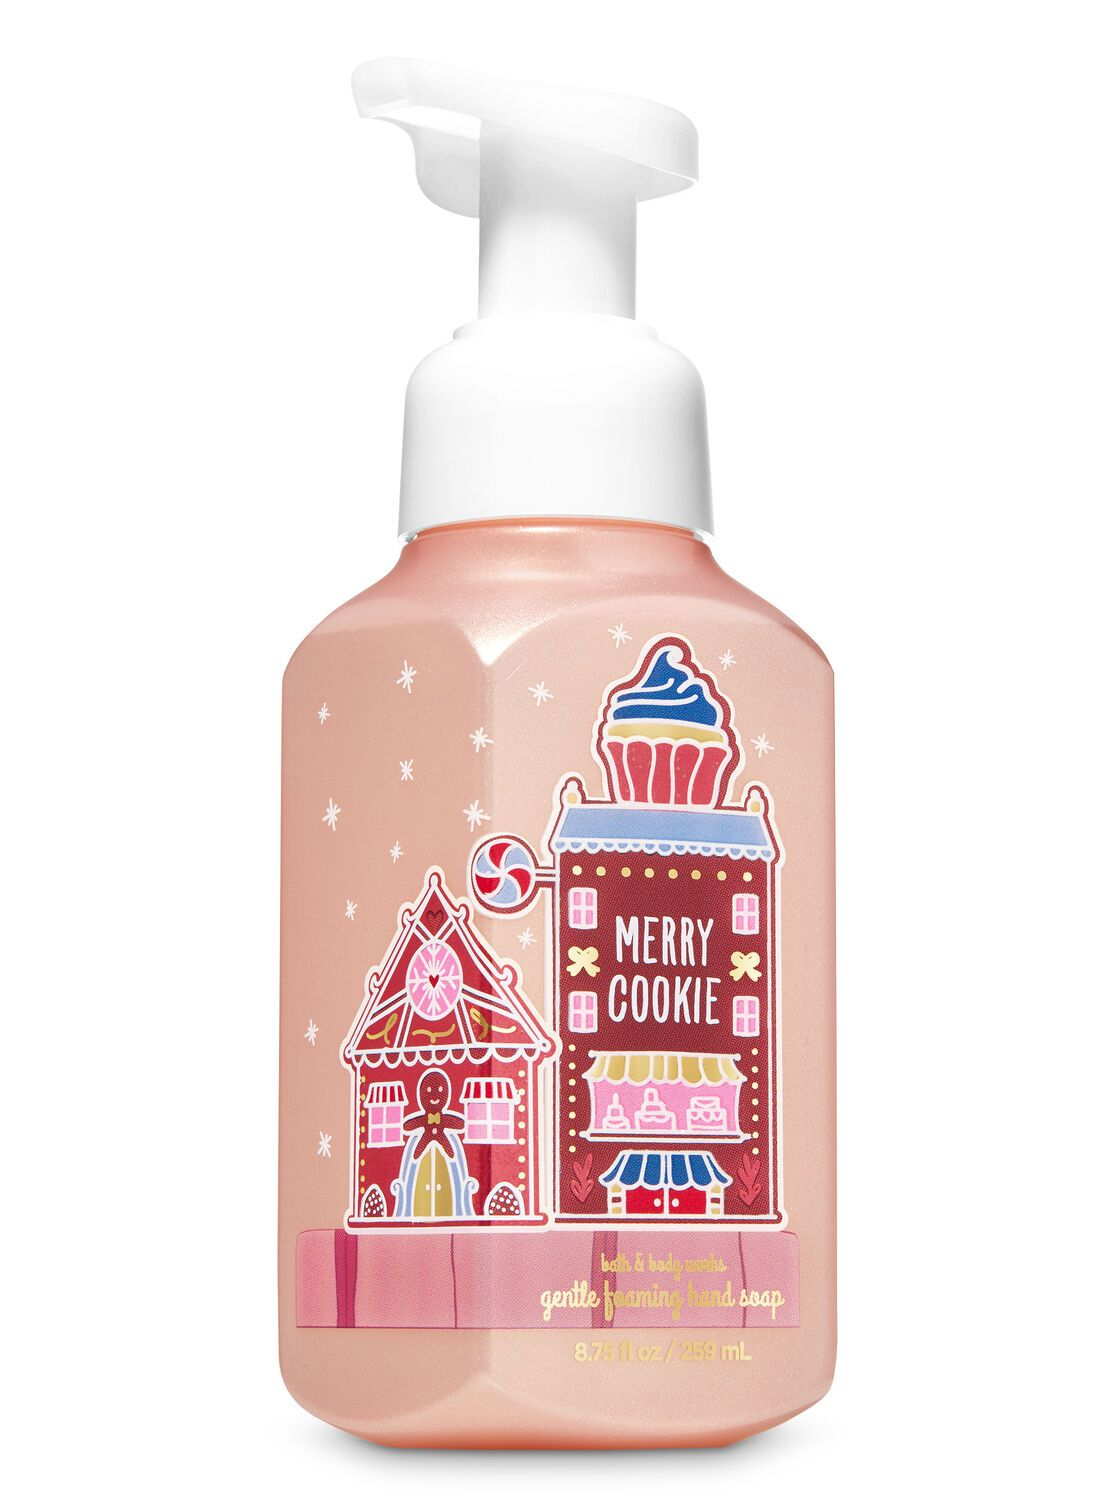 Merry Cookie Gentle Foaming Hand Soap Foaming Hand Soap Bath